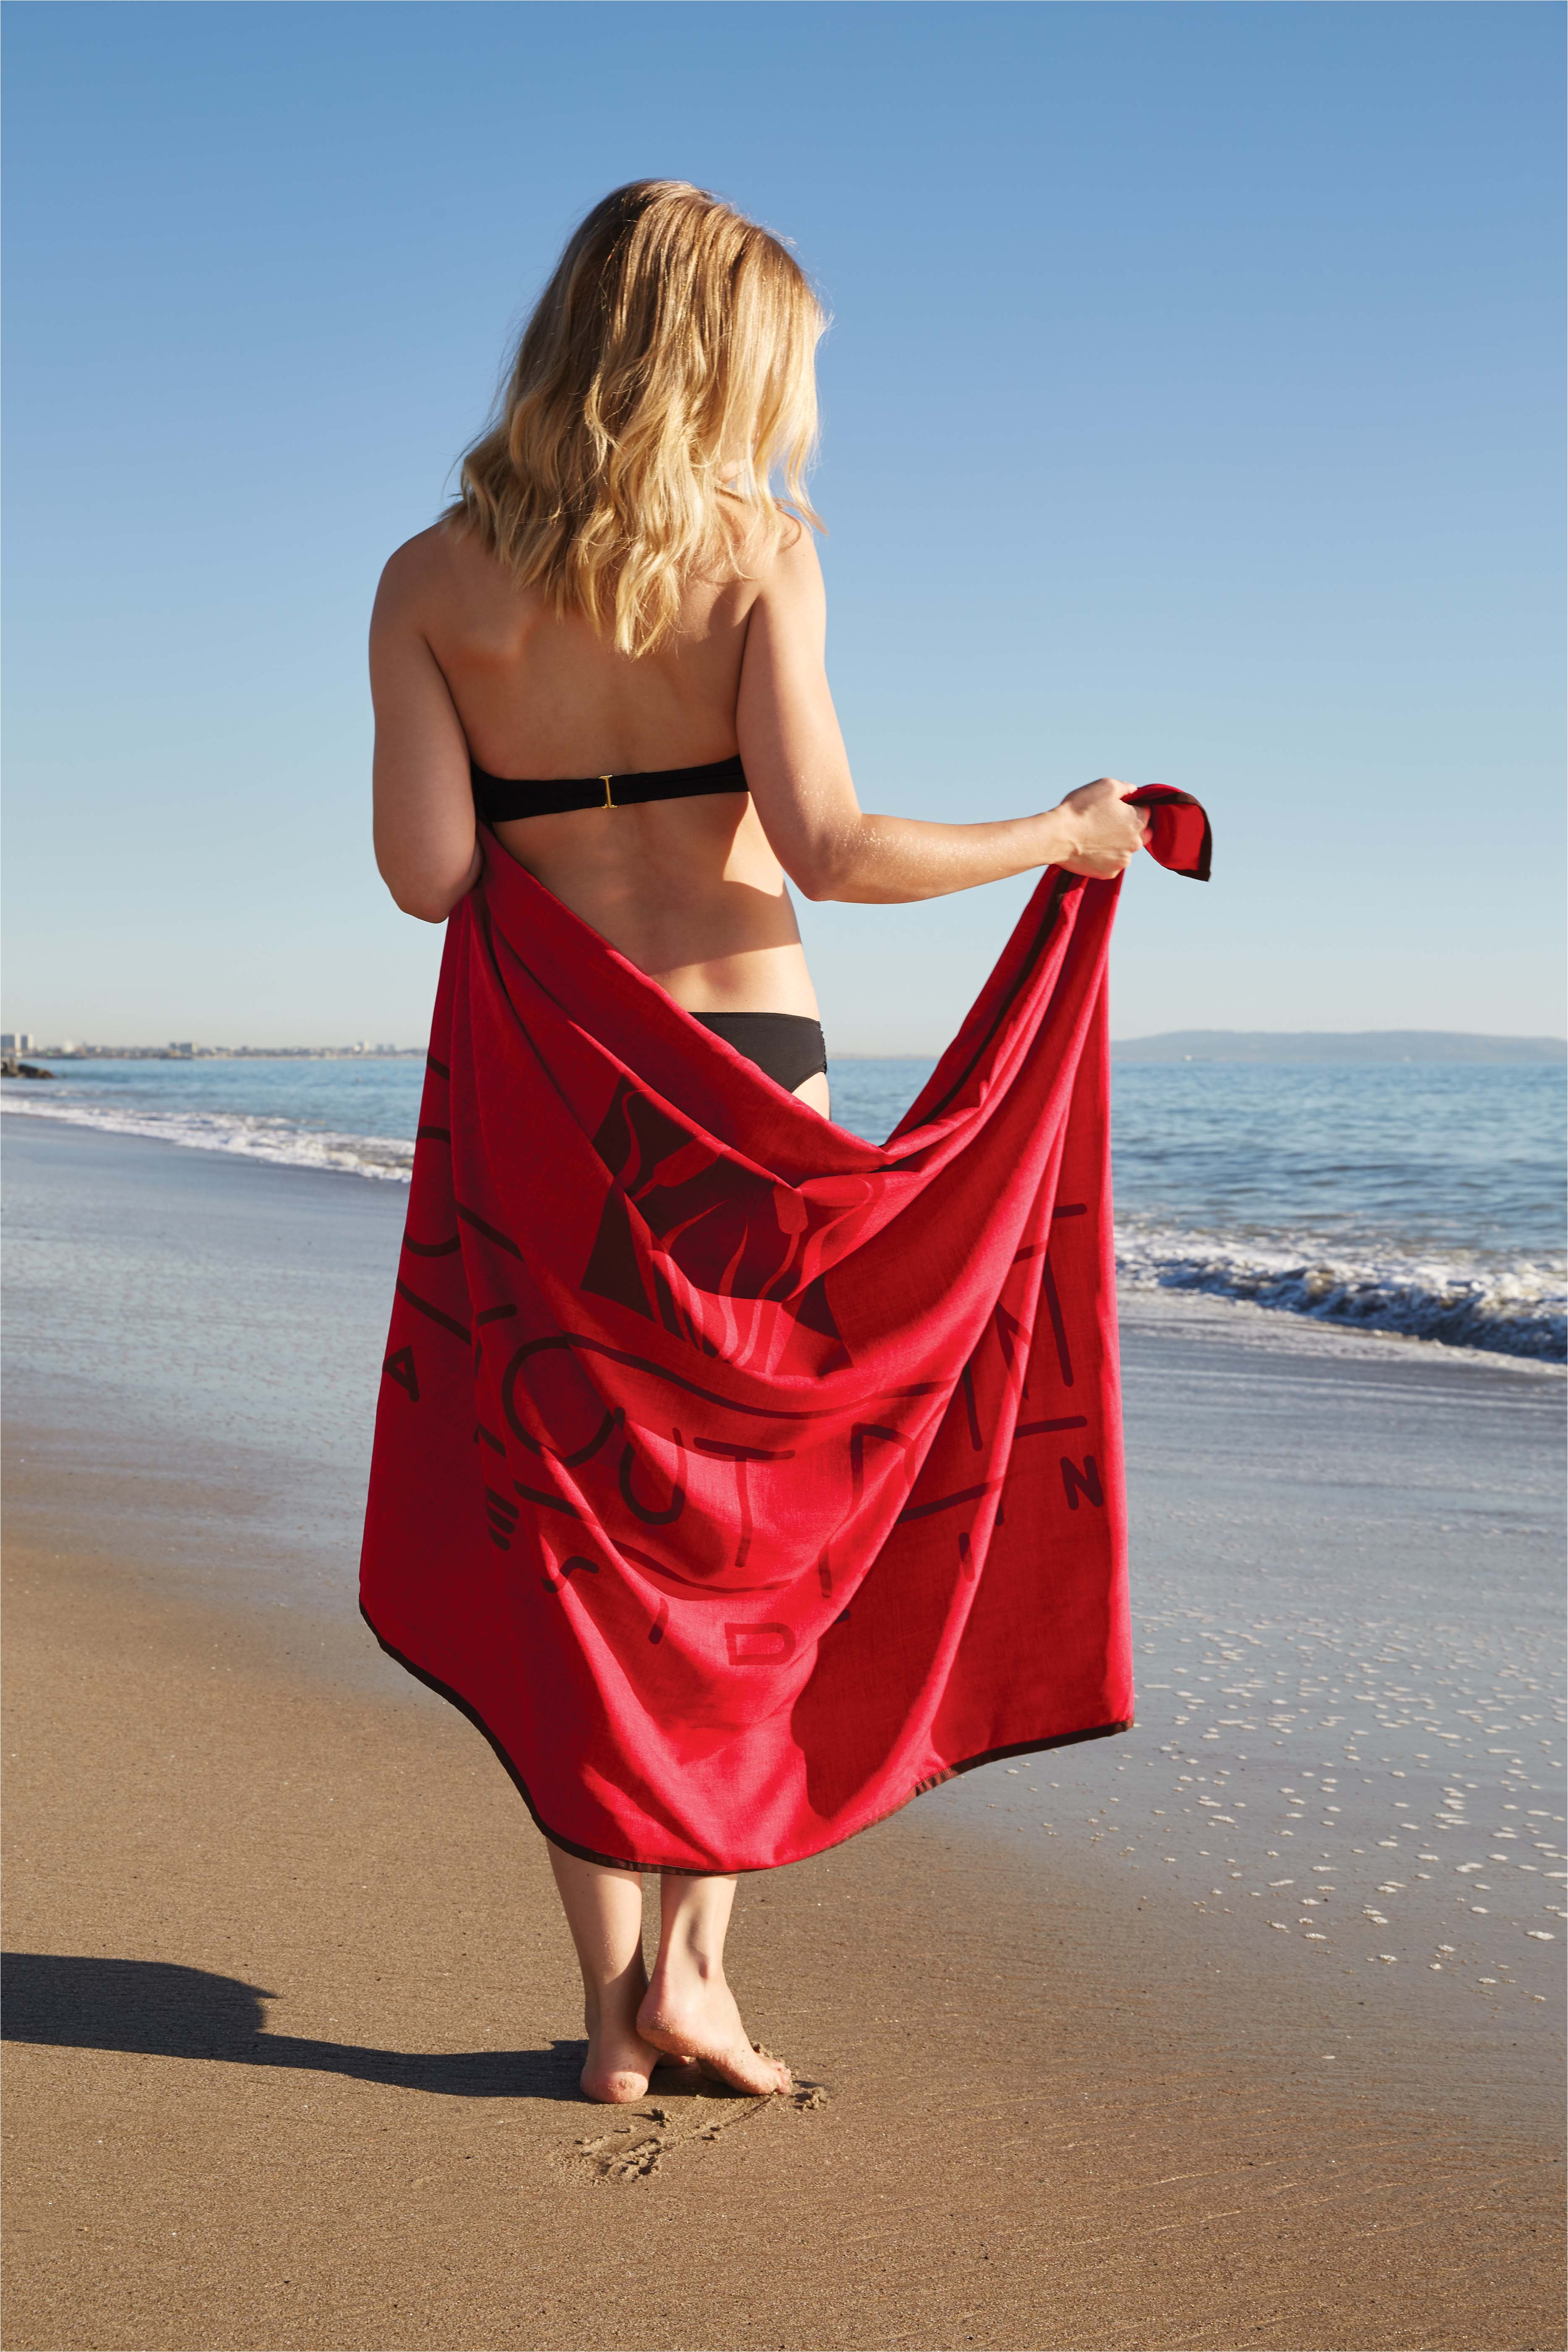 Beach towel that Repels Sand Sand Repellent Beach Blankets Pro towels